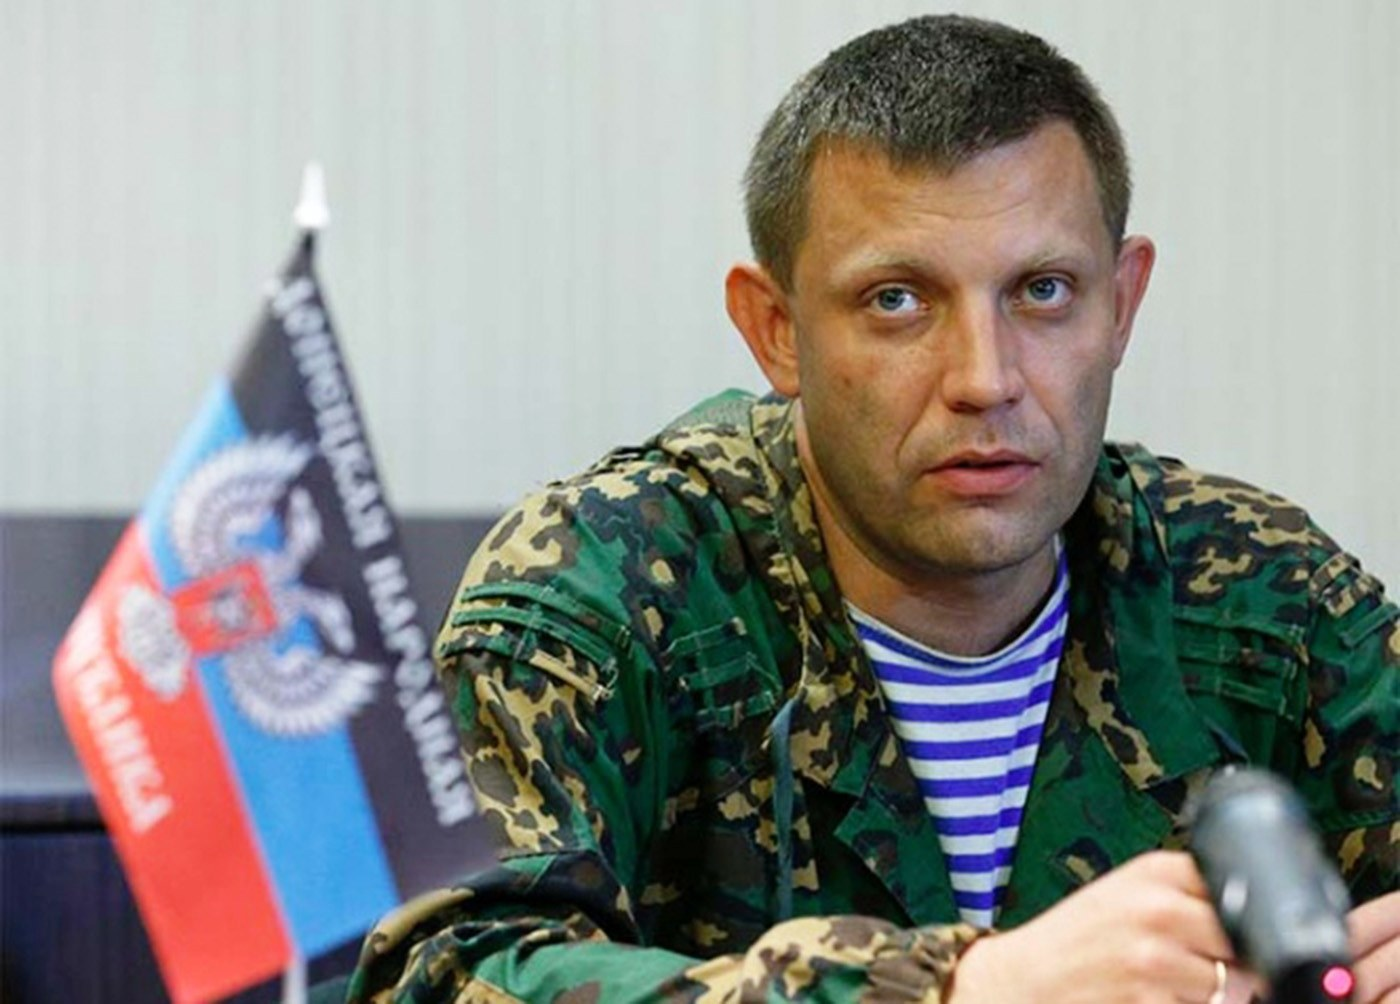 The Daily Vertical: Rebranding The Donbas